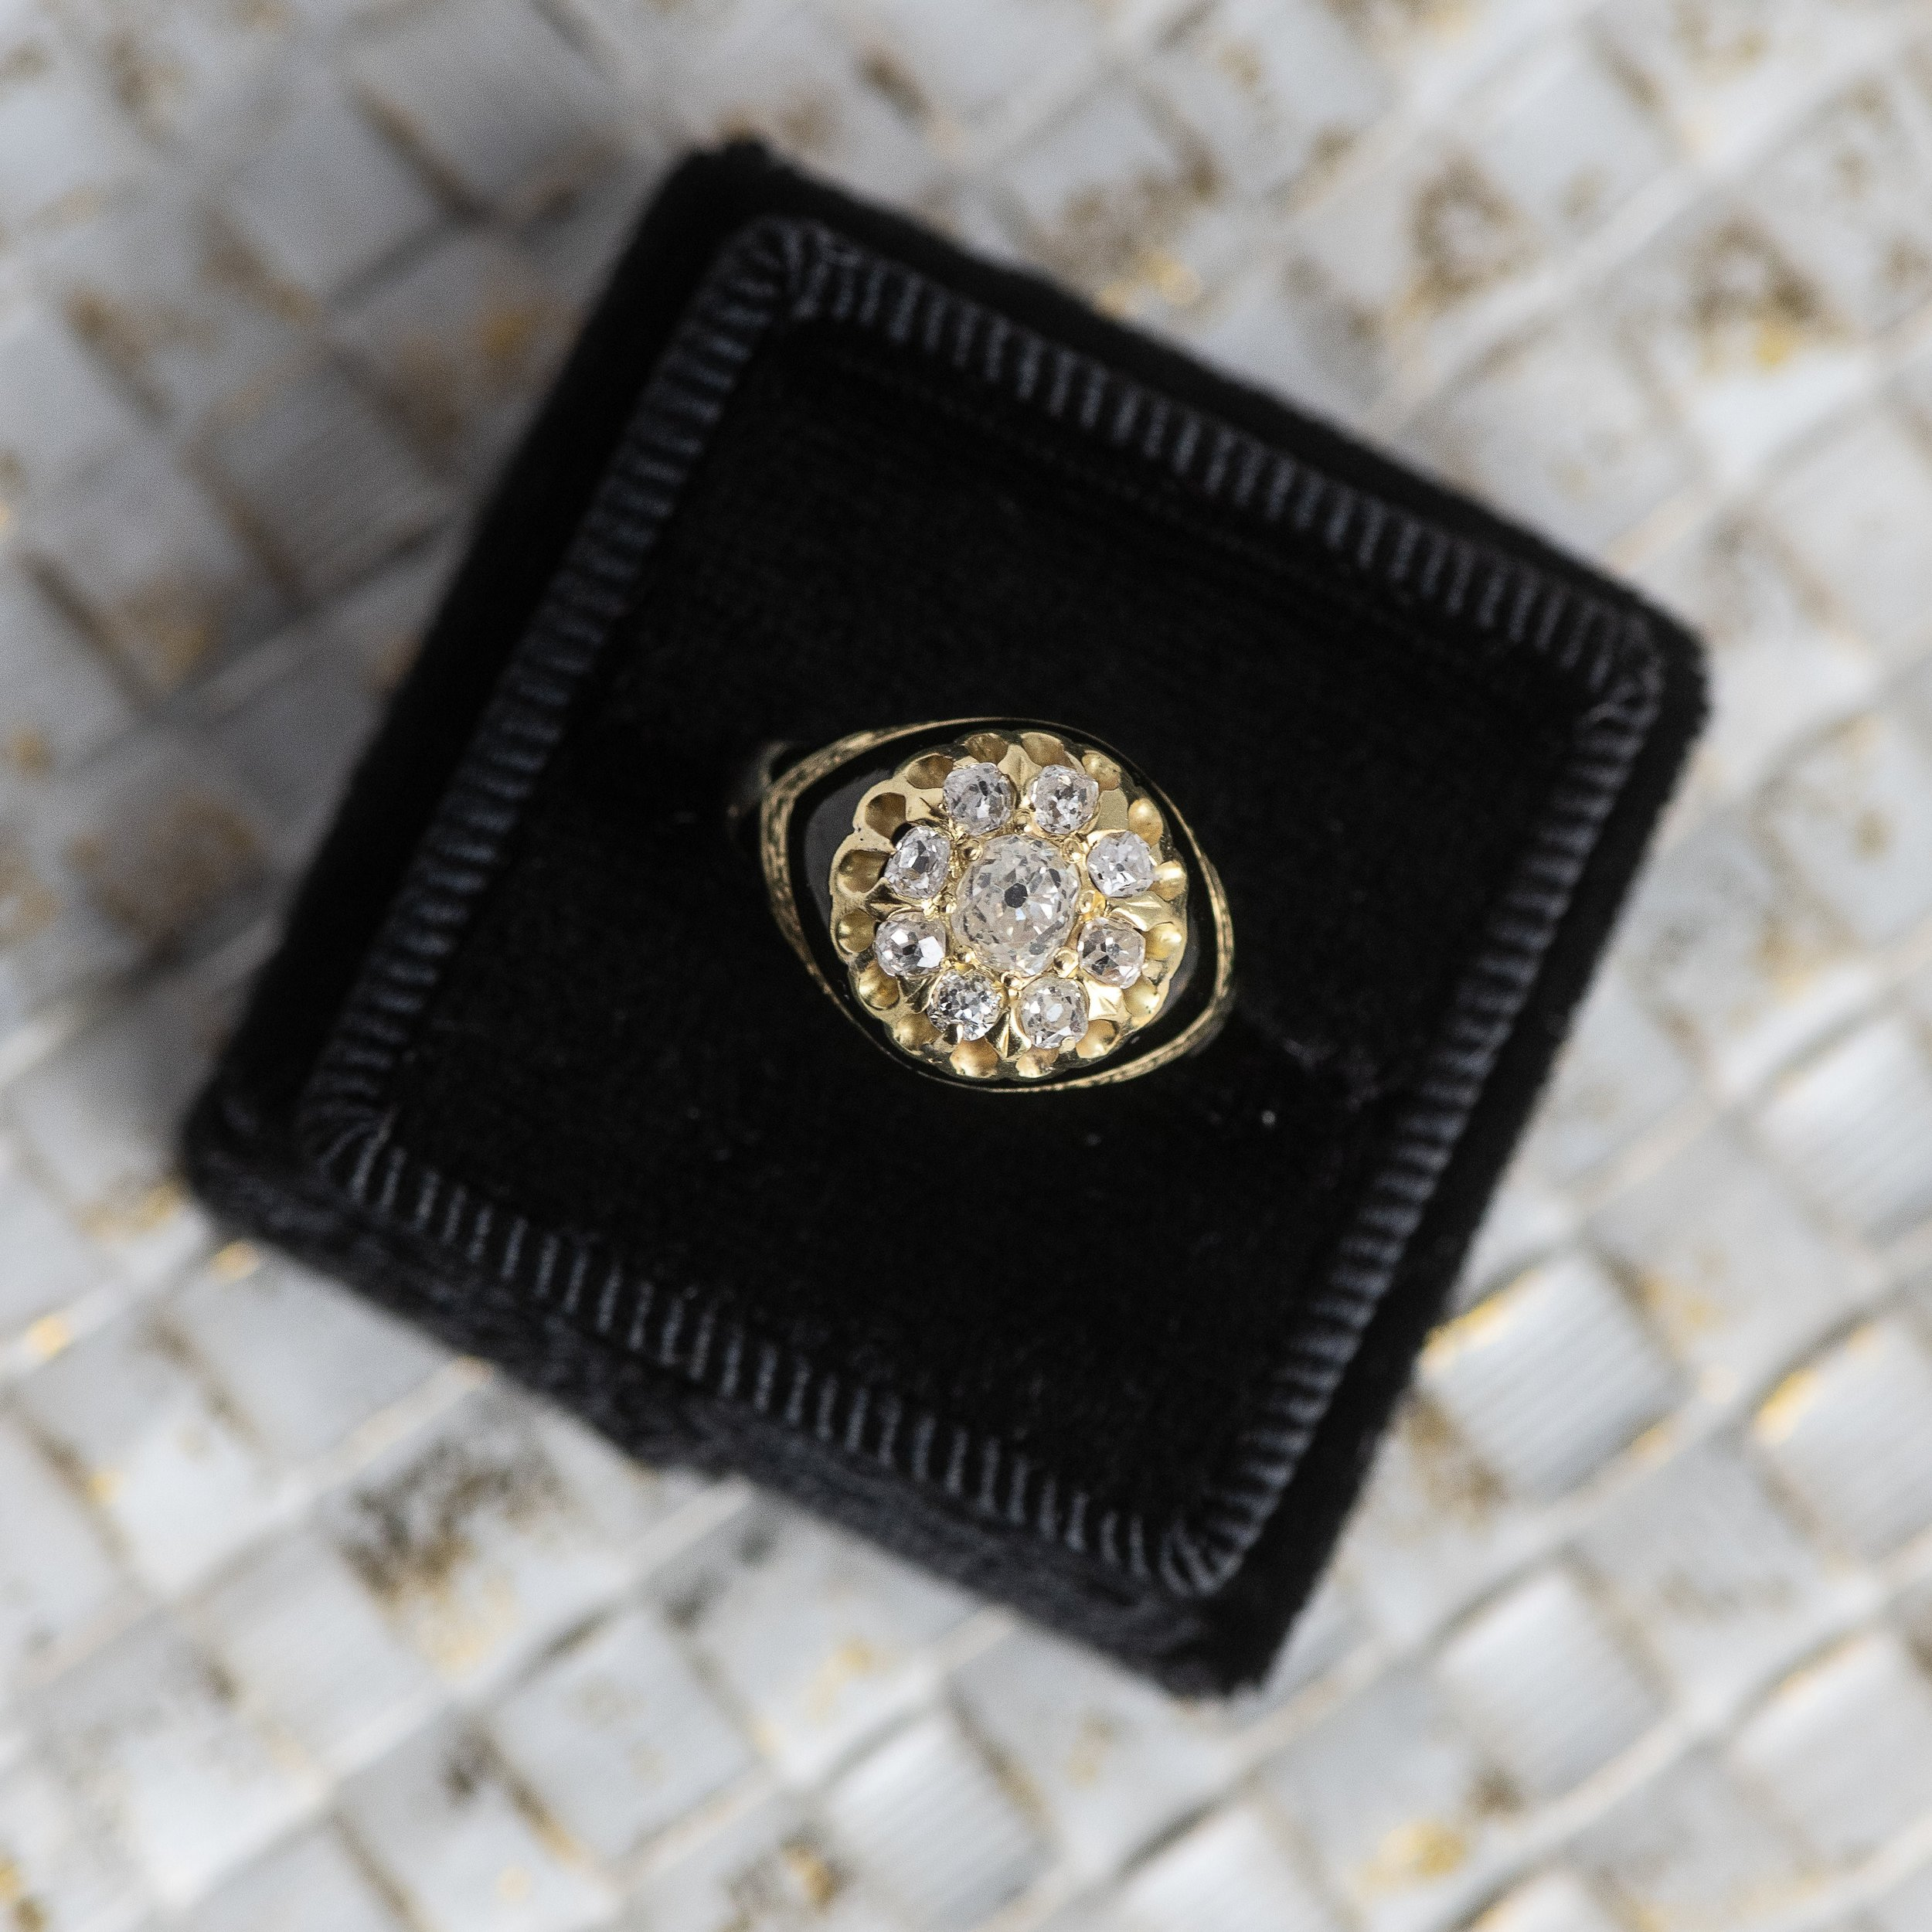 This Old Mine cut diamond cluster ring features to die for black enameling and engraving details! Click  HERE  to view this beauty in all its glory!